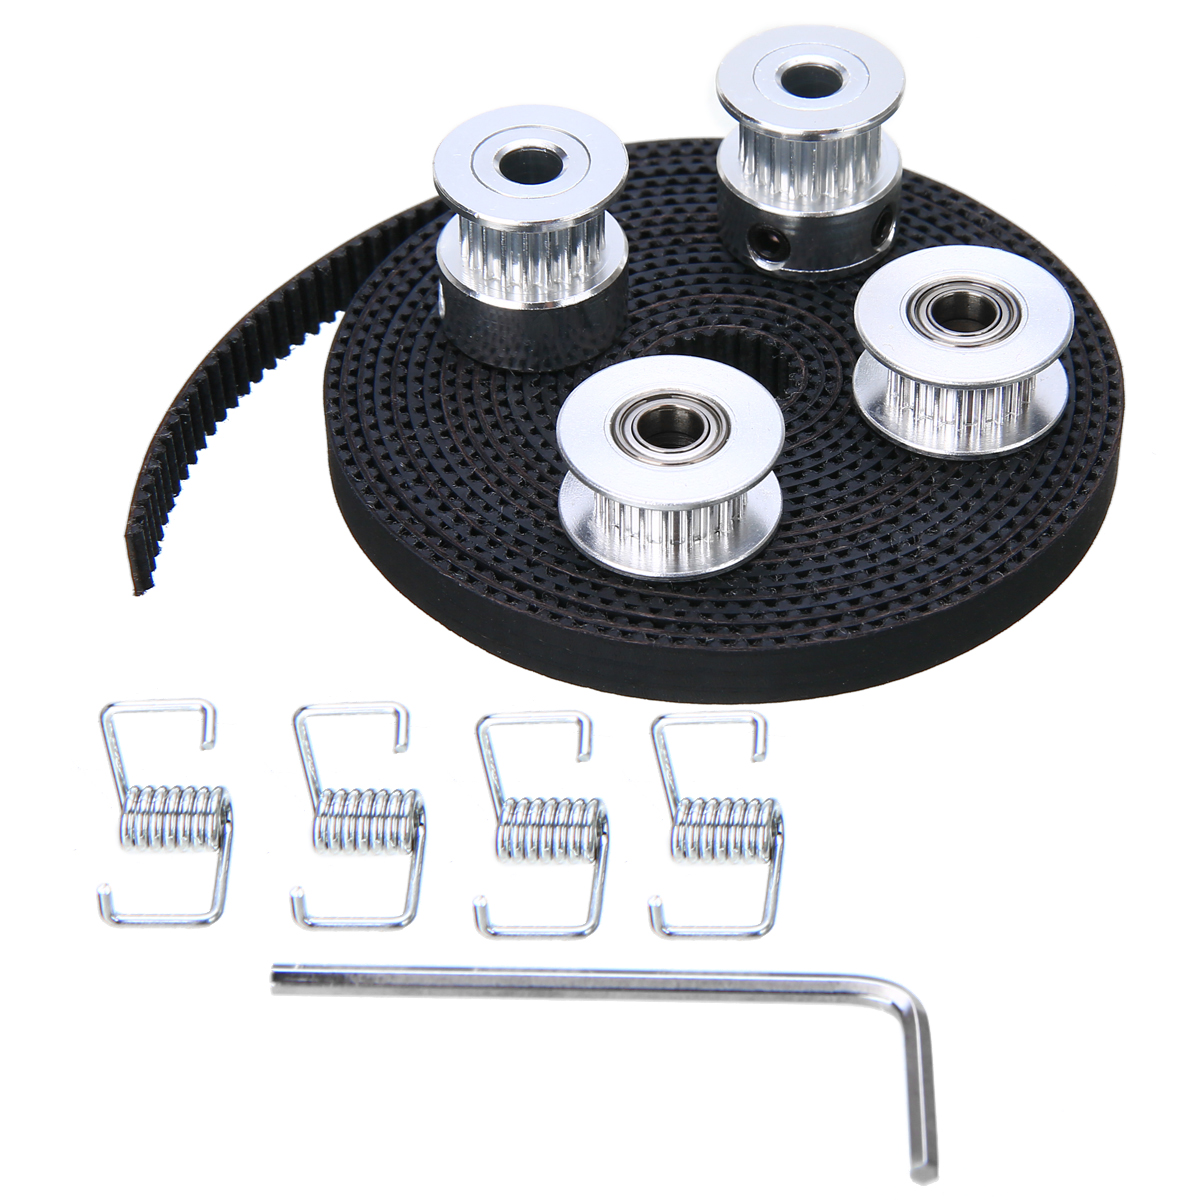 New Arrival 2.5m 20T GT2 Timing Belt +4pcs Pulley Idler + 4pcs Tensioner 3D Printer Tool Set MayitrNew Arrival 2.5m 20T GT2 Timing Belt +4pcs Pulley Idler + 4pcs Tensioner 3D Printer Tool Set Mayitr